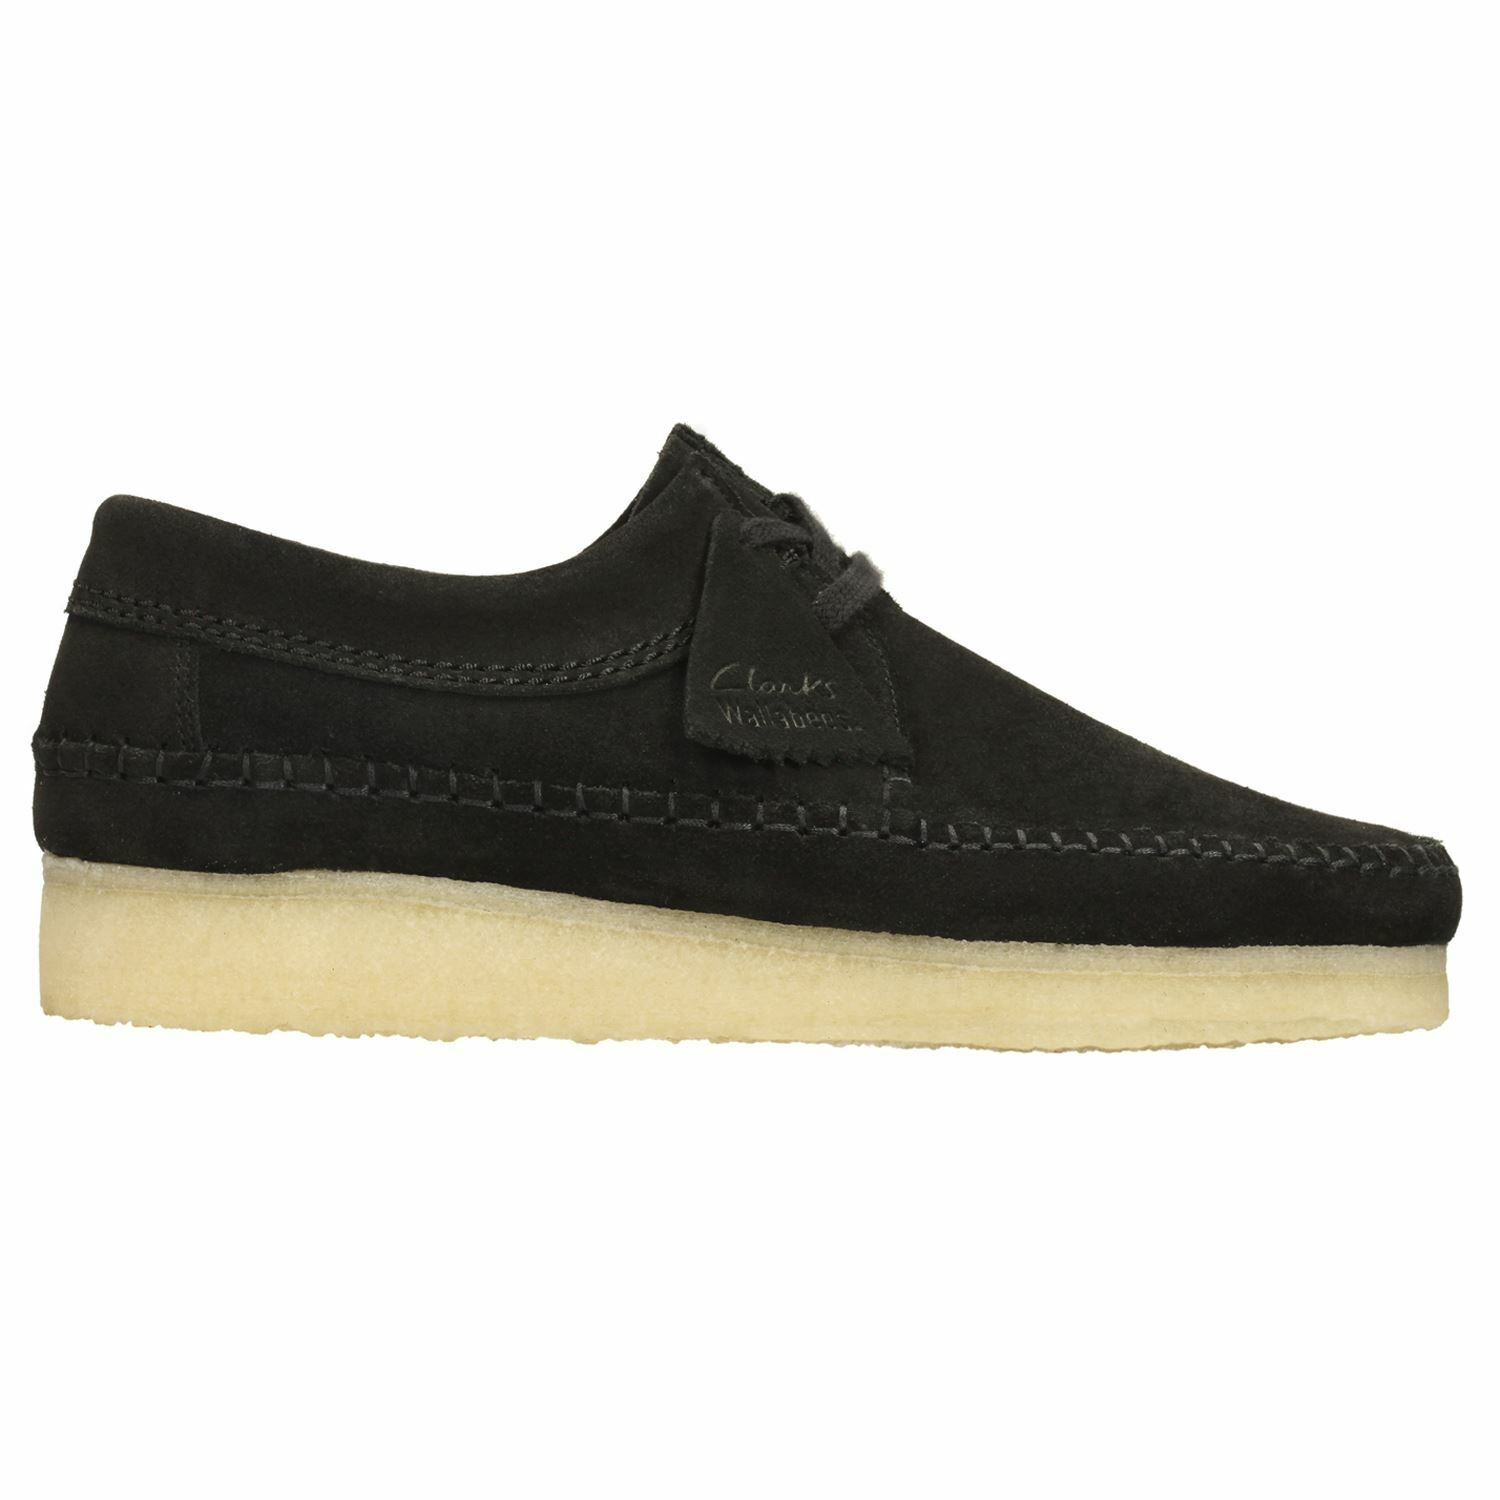 Clarks Originals Weaver Black Mens Shoes